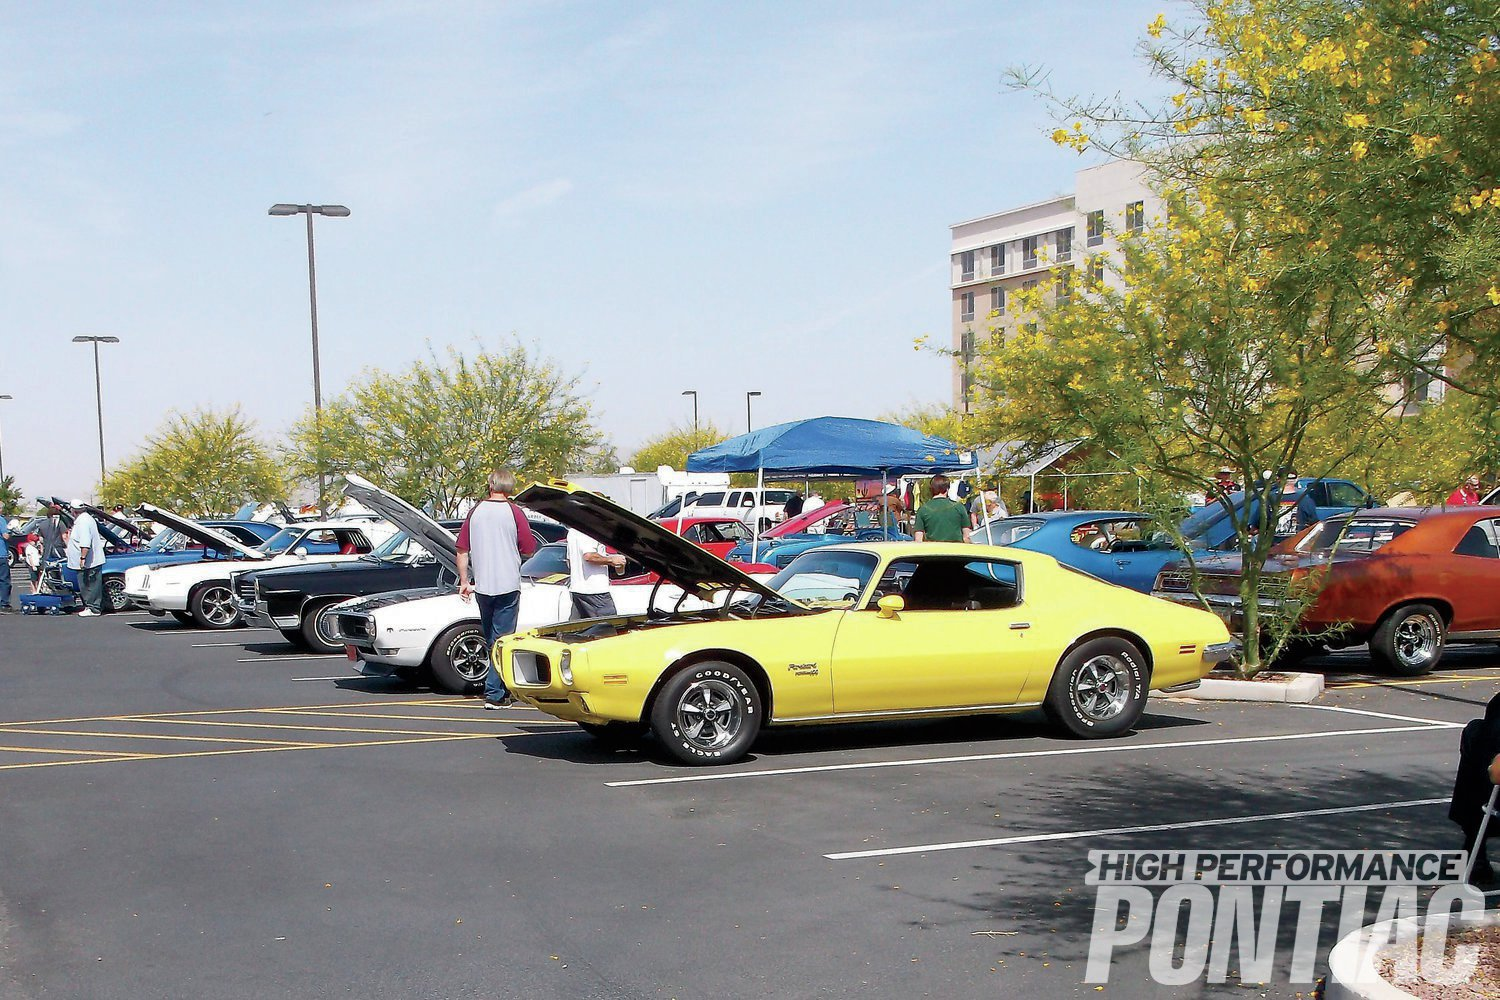 A yellow '70 Firebird Formula 400 leads off this row of event show cars. It may look familiar—it was our cover car back in the Feb. '08 issue.